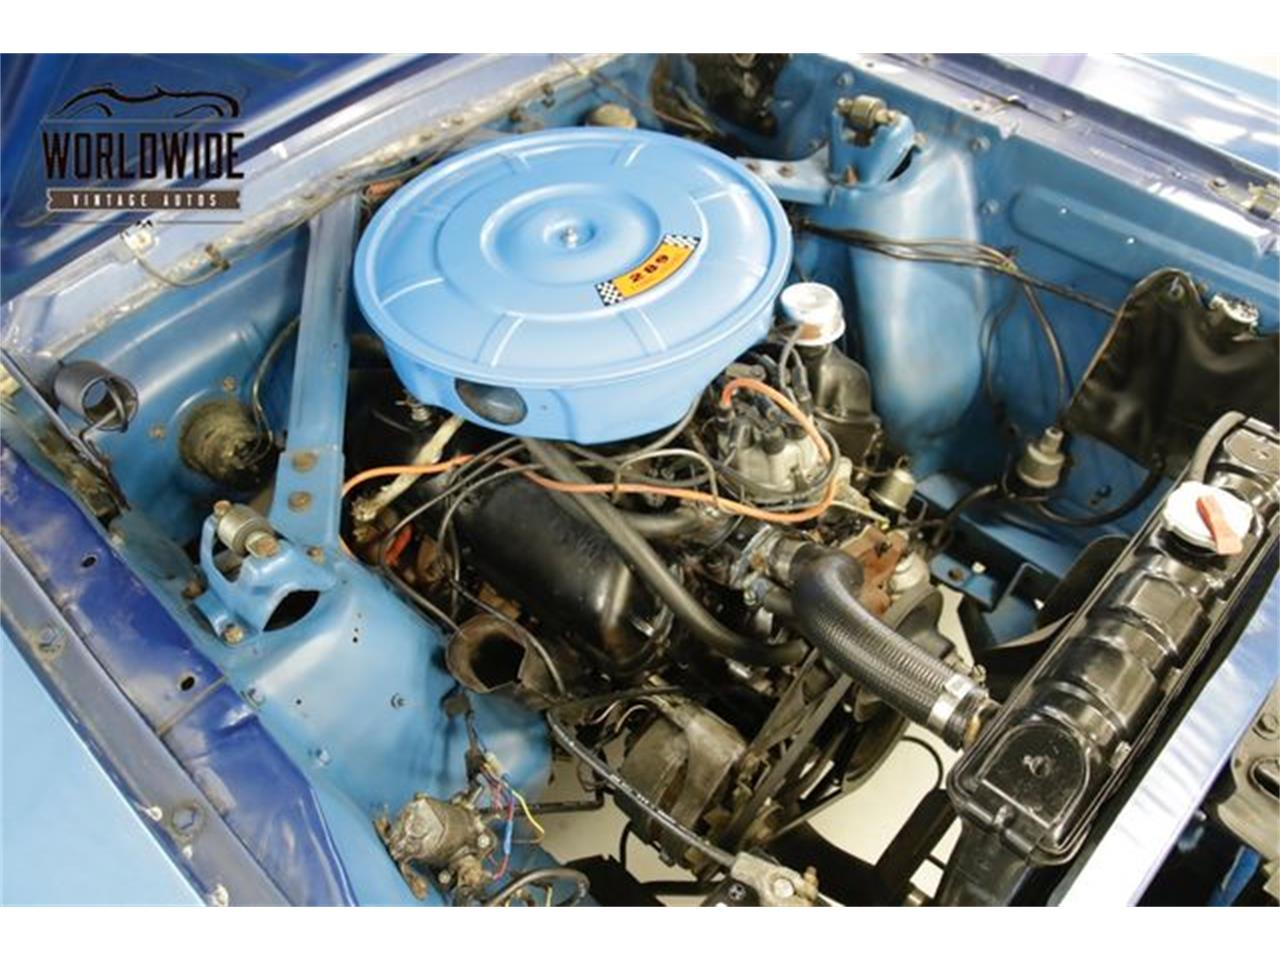 Ford Mustang V8 history 1966 prix tout compris